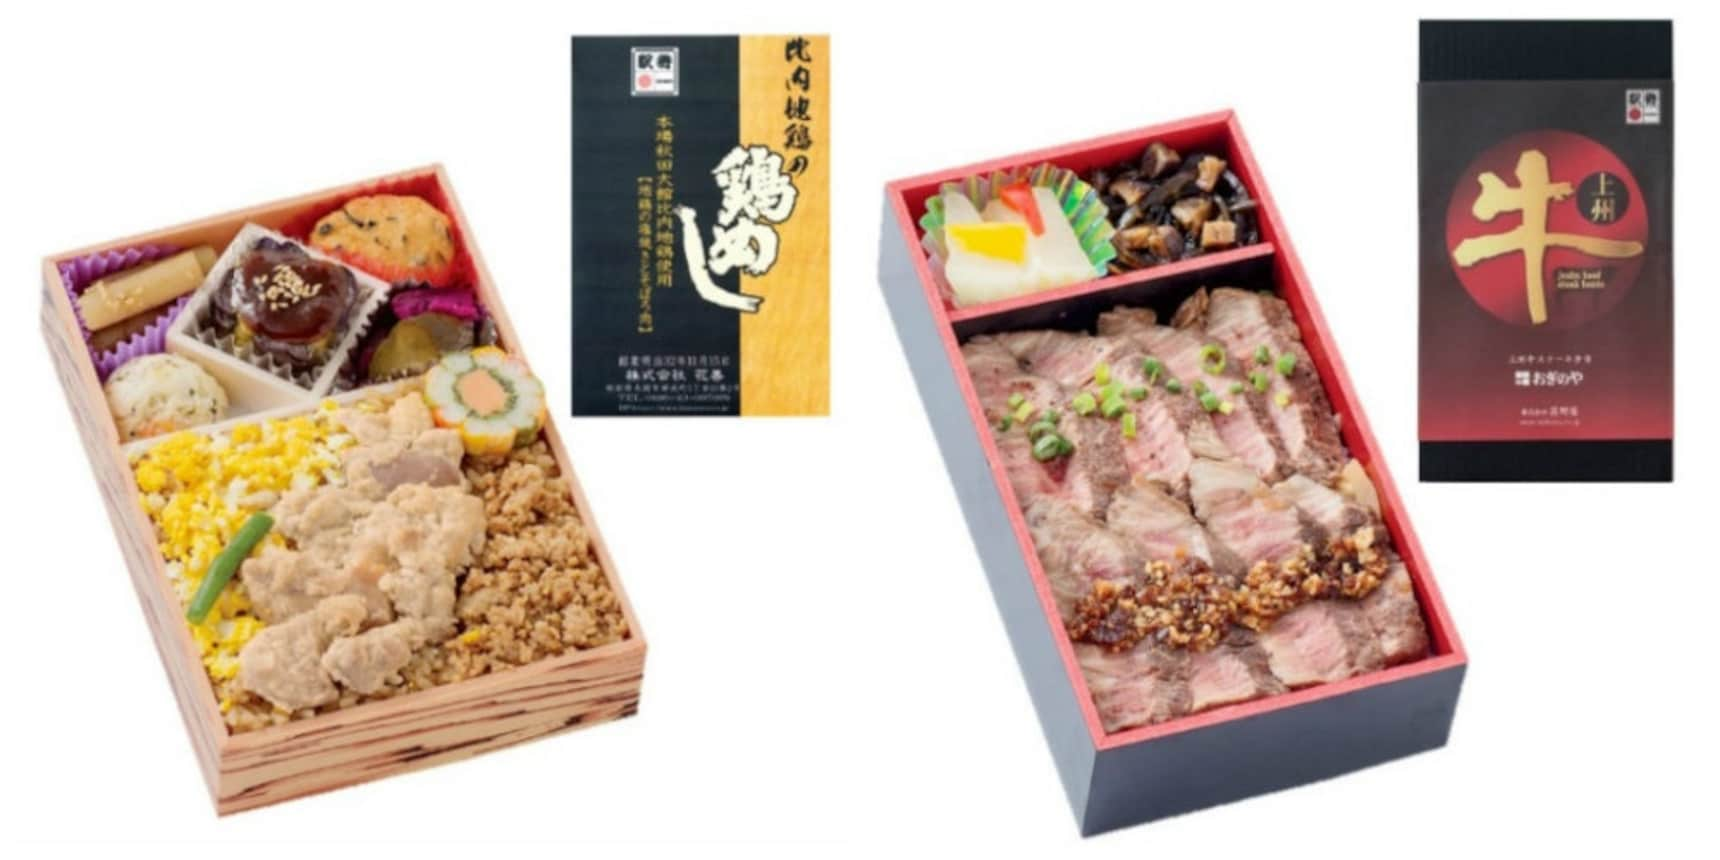 The Best Station Bento Boxed Lunches of 2016